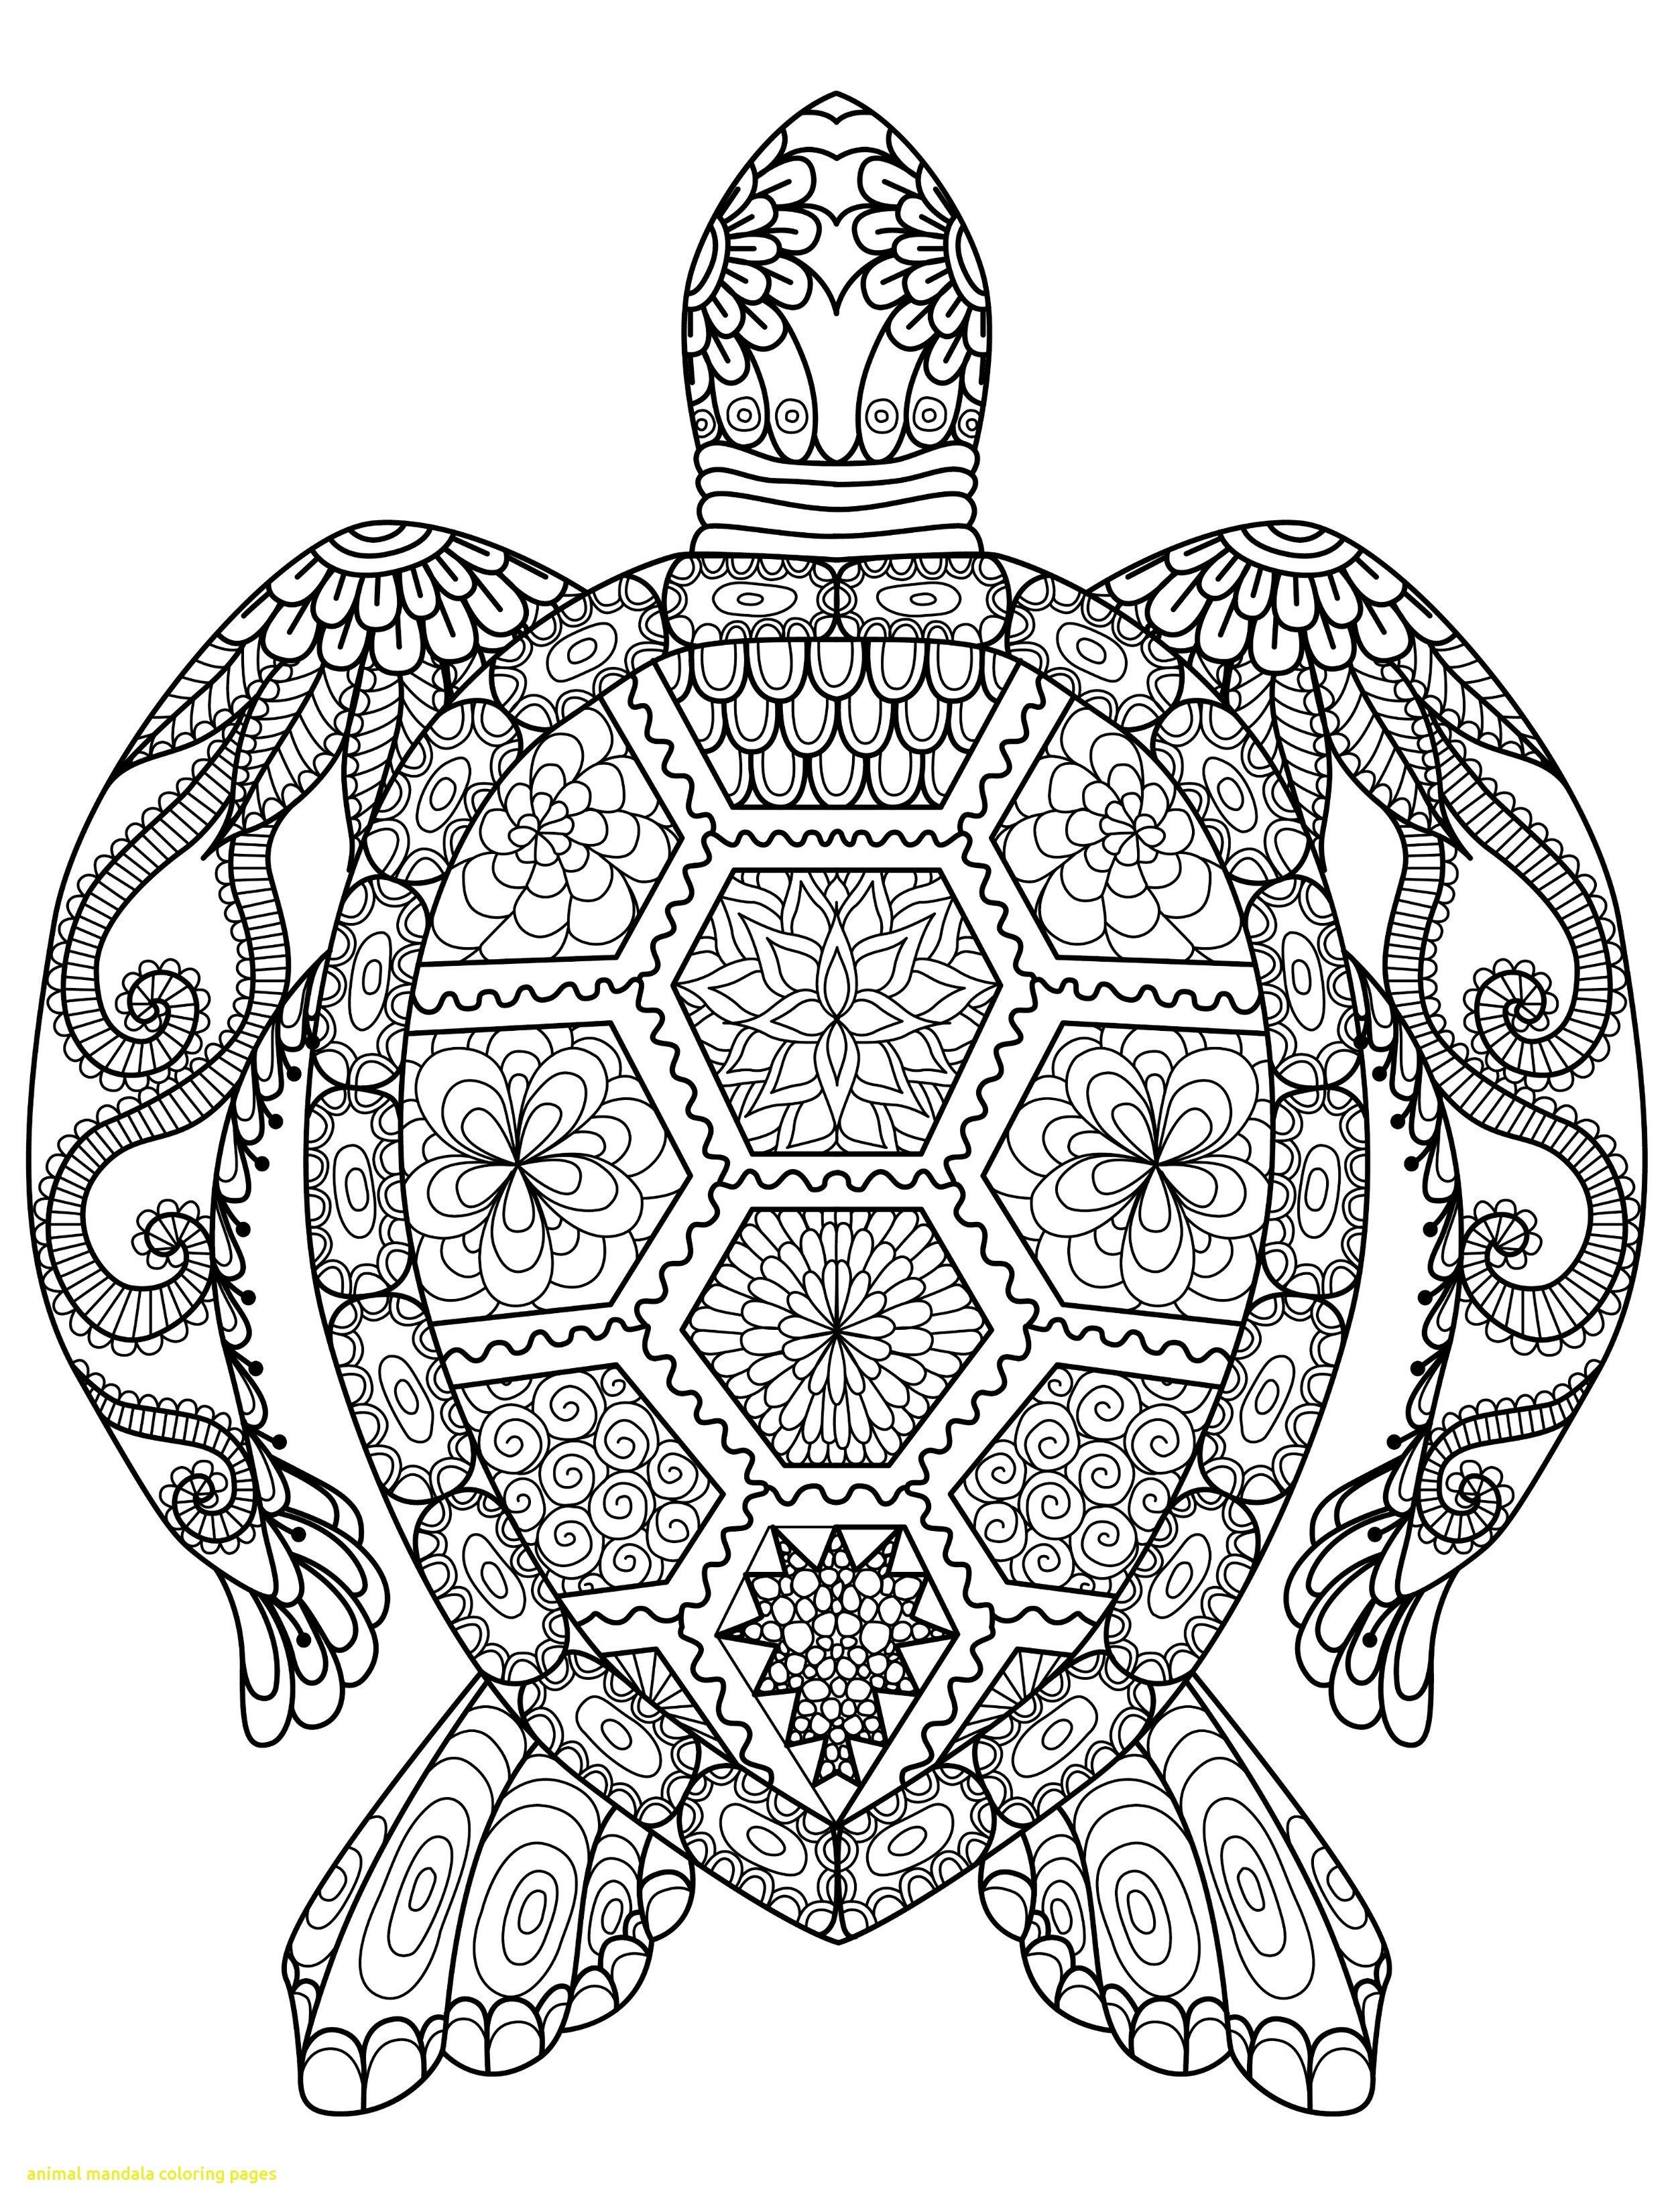 24 Creative Photo Of Mandala Coloring Page Davemelillo Com Turtle Coloring Pages Mandala Coloring Pages Animal Coloring Pages